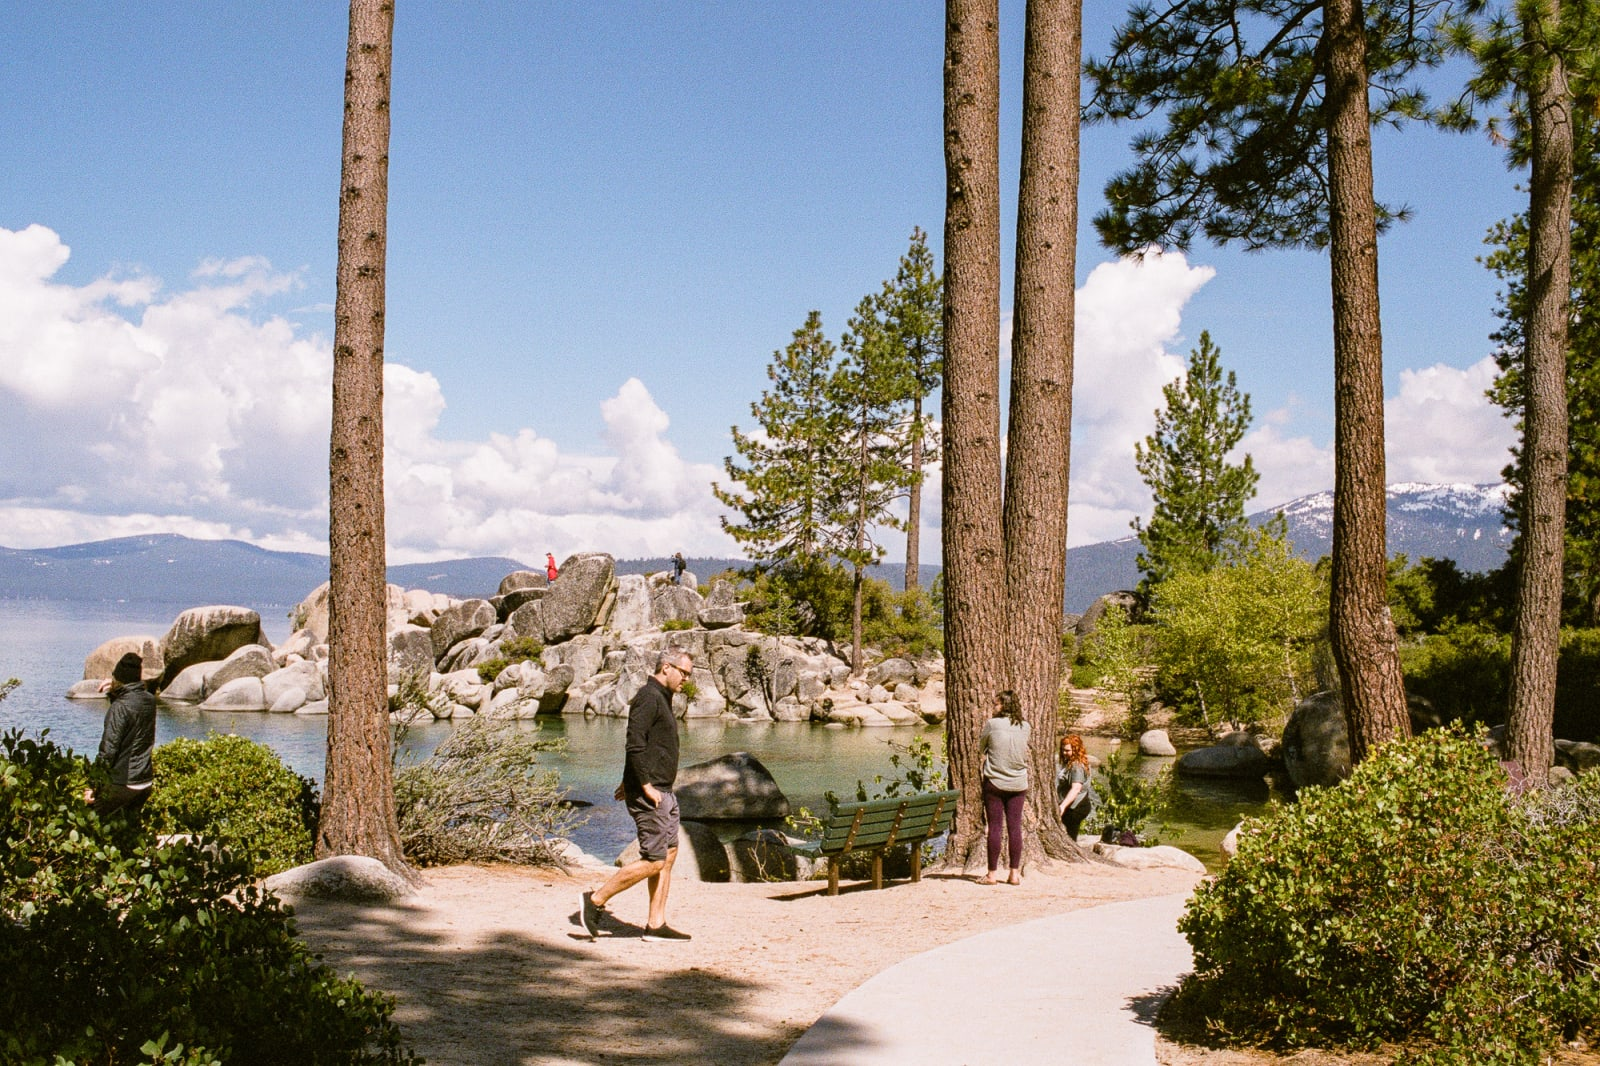 Nevada State Park, Lake Tahoe. Summer, 2019